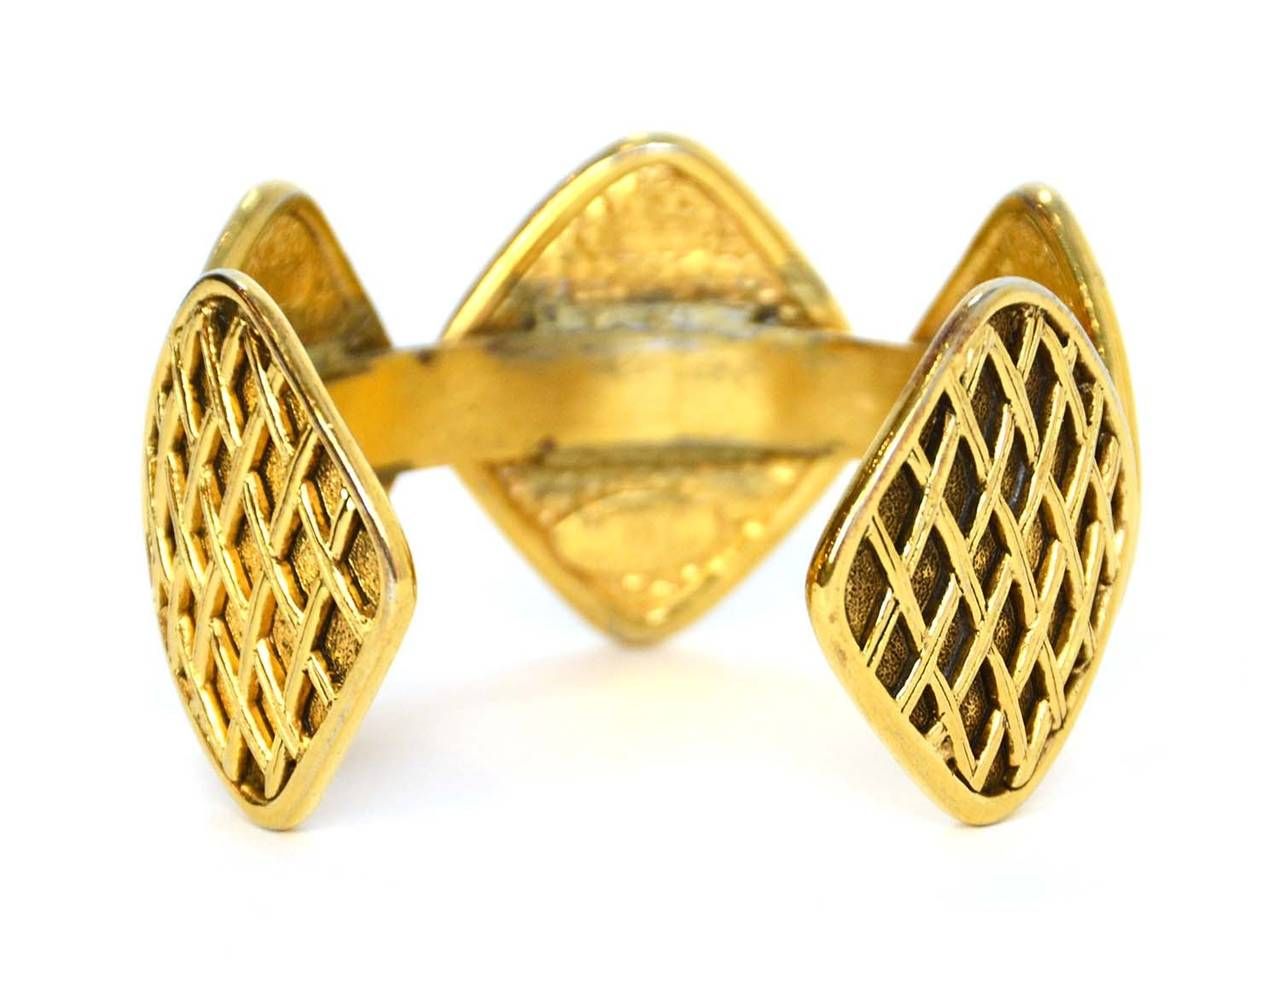 Chanel Vintage '90s Gold Quilted Medallion Cuff Bracelet In Excellent Condition For Sale In New York, NY